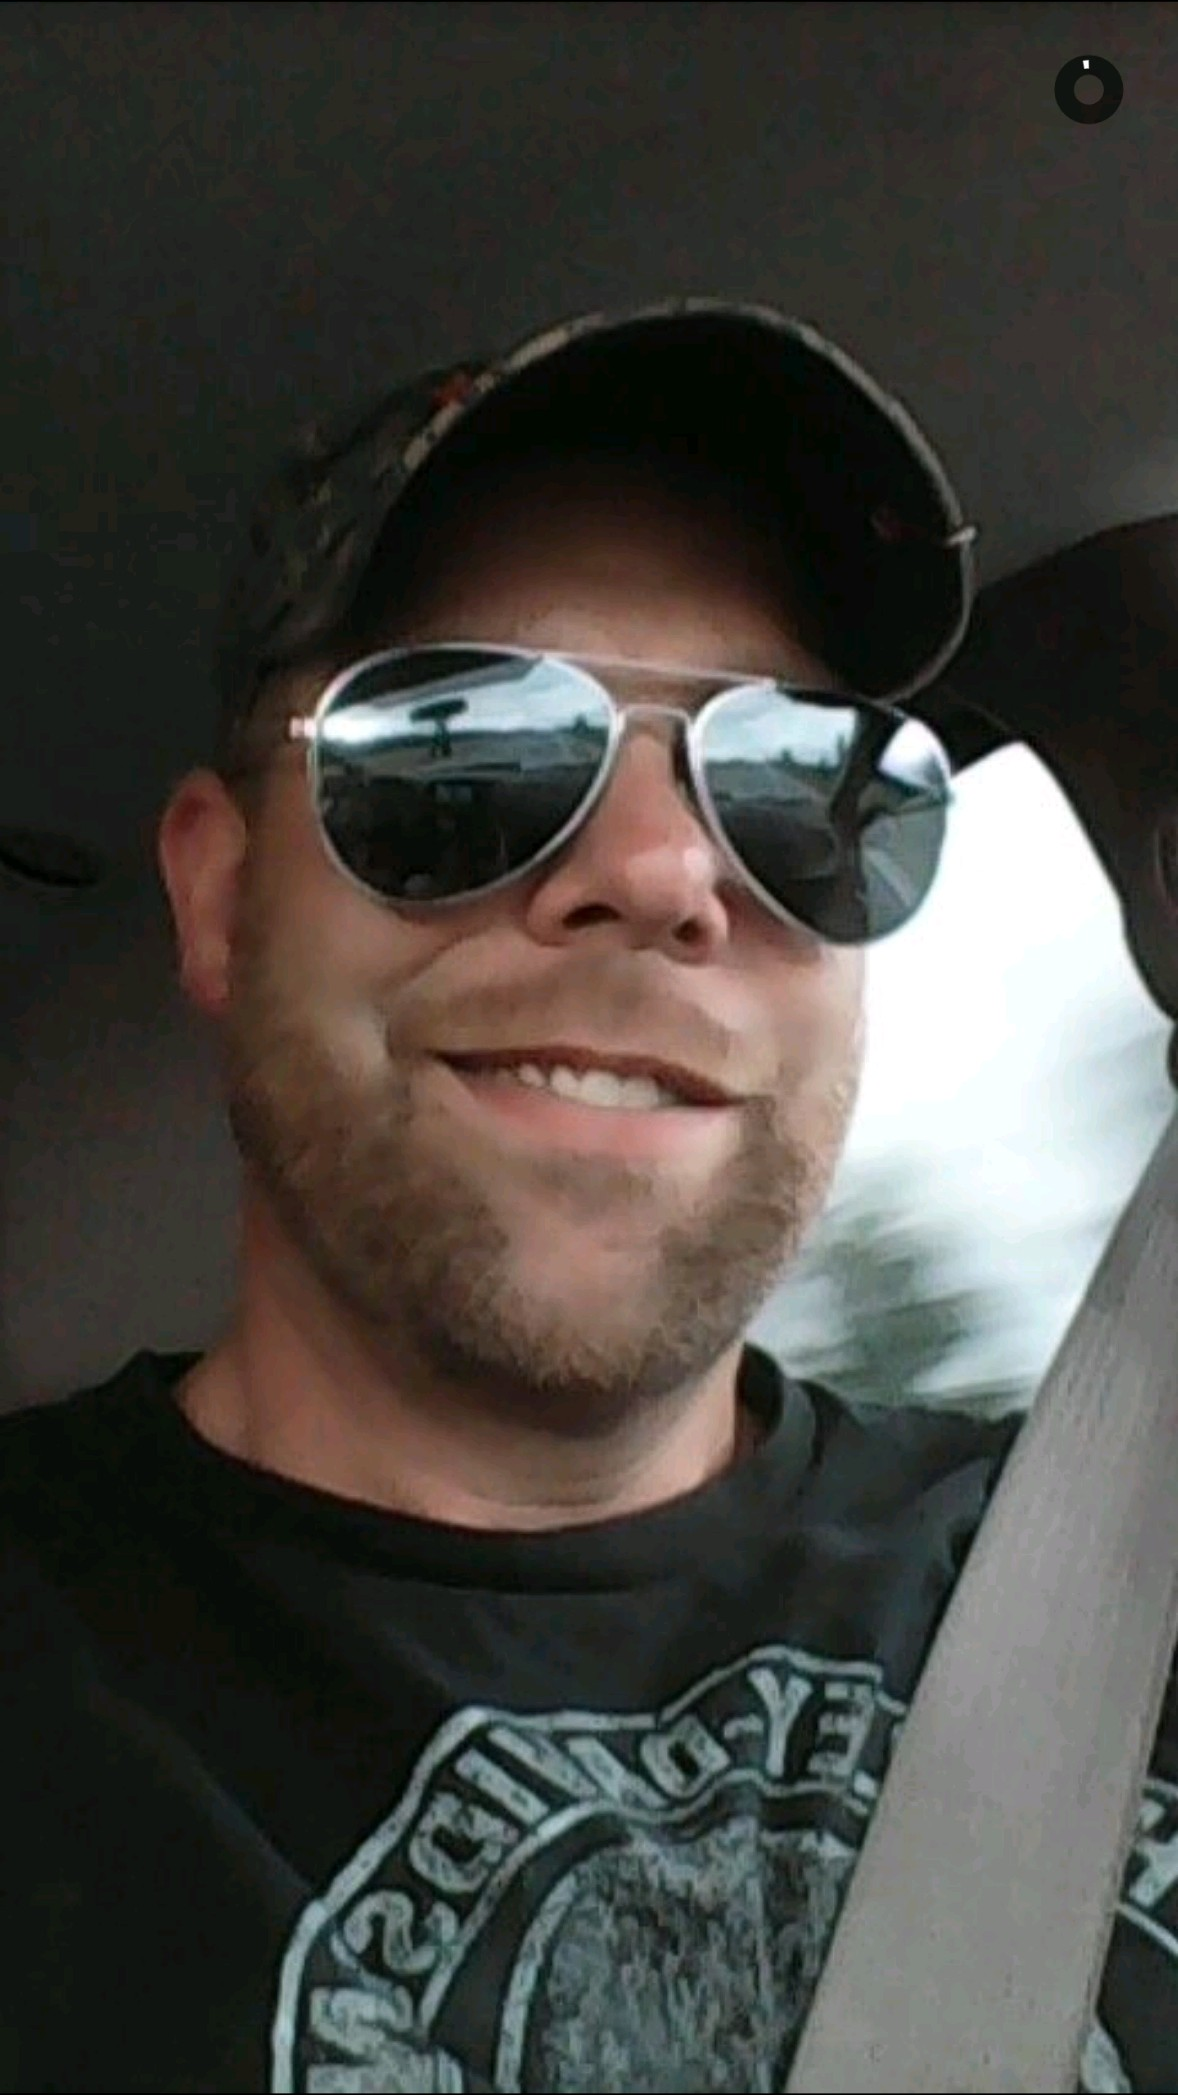 38-year-old Jeremy Leonard of Saginaw died in a motorcycle accident in Bridgeport at the end of July. (Photo credit: Shawna Sykes)